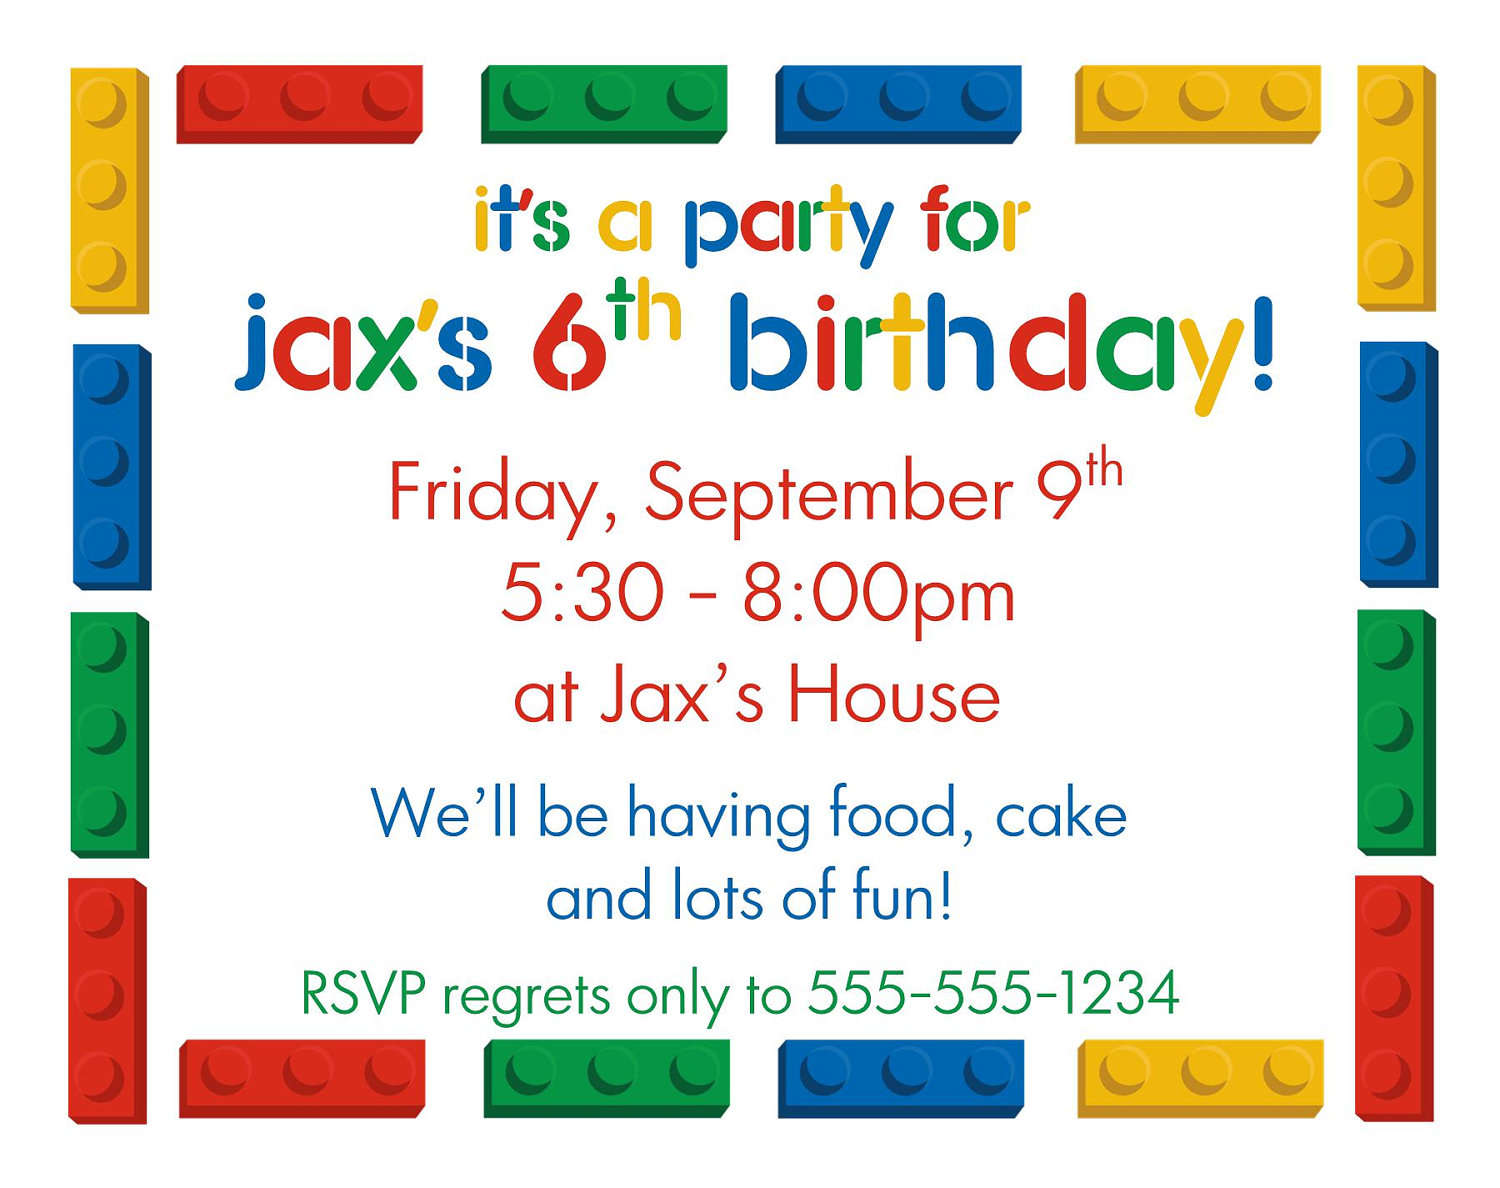 birthday party invitation template with photo ; free-kids-birthday-invitation-templates-6th-kids-birthday-party-invitations-template